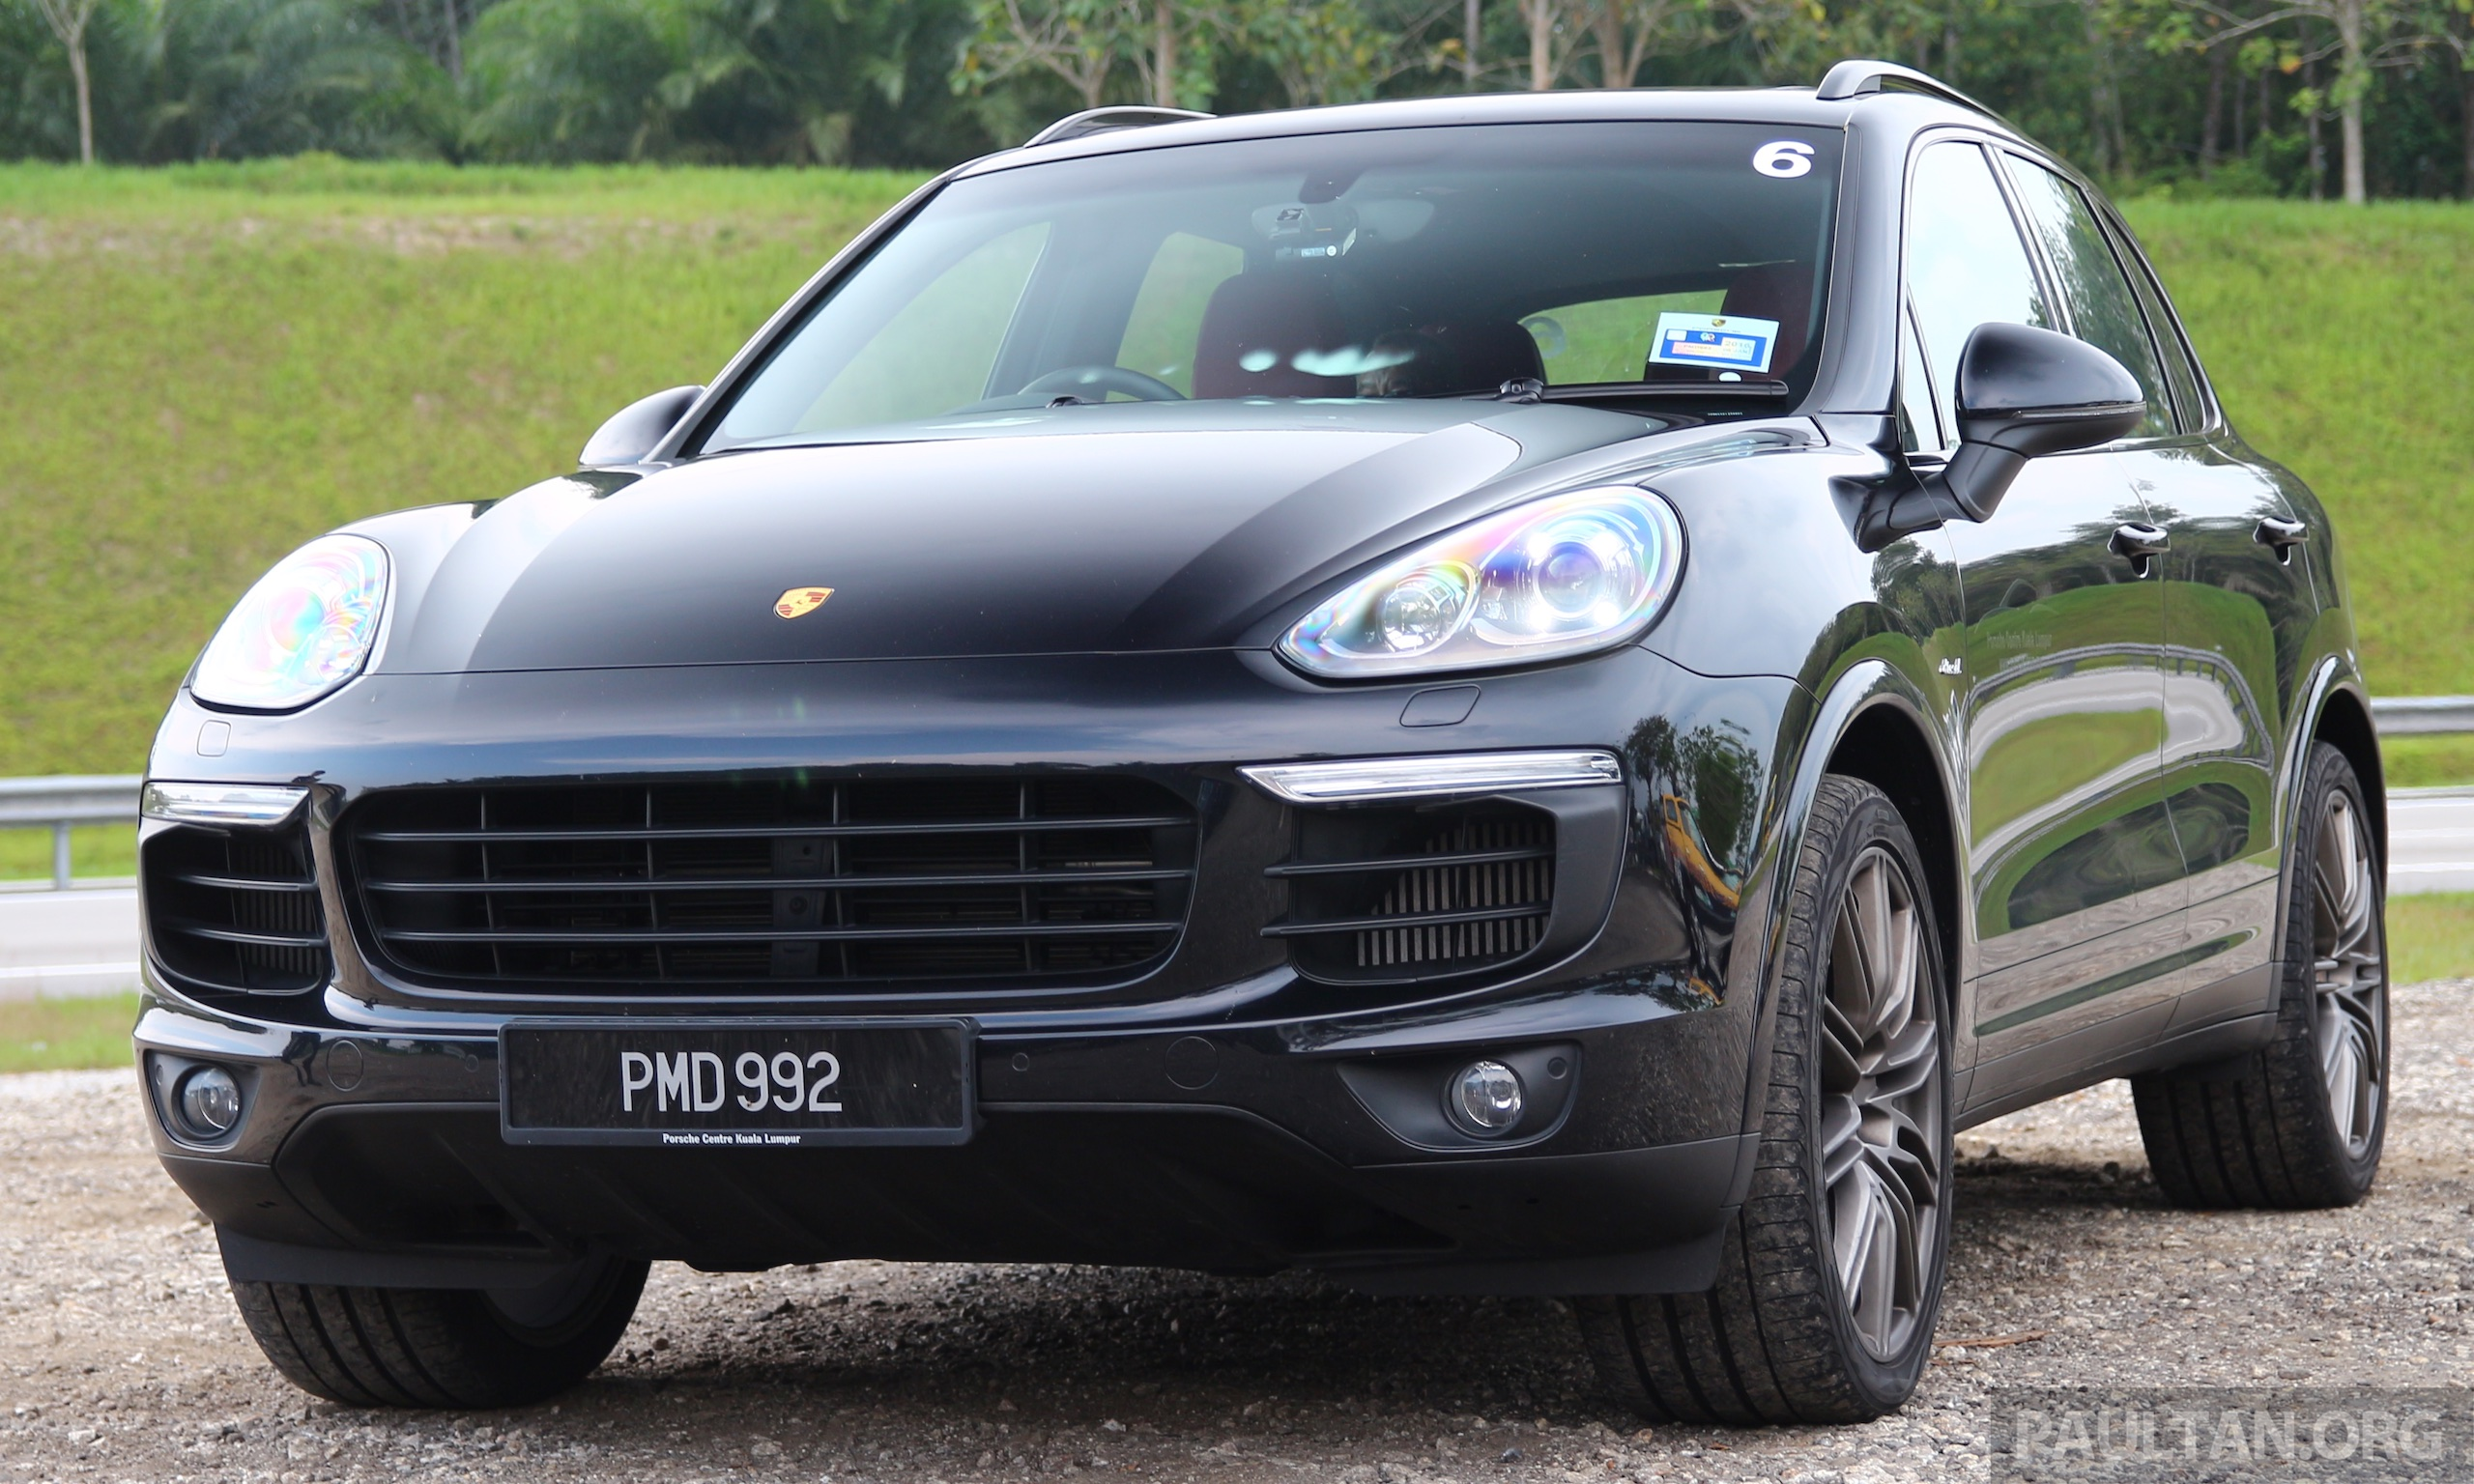 driven porsche cayenne facelift to johor and back image 420808. Black Bedroom Furniture Sets. Home Design Ideas